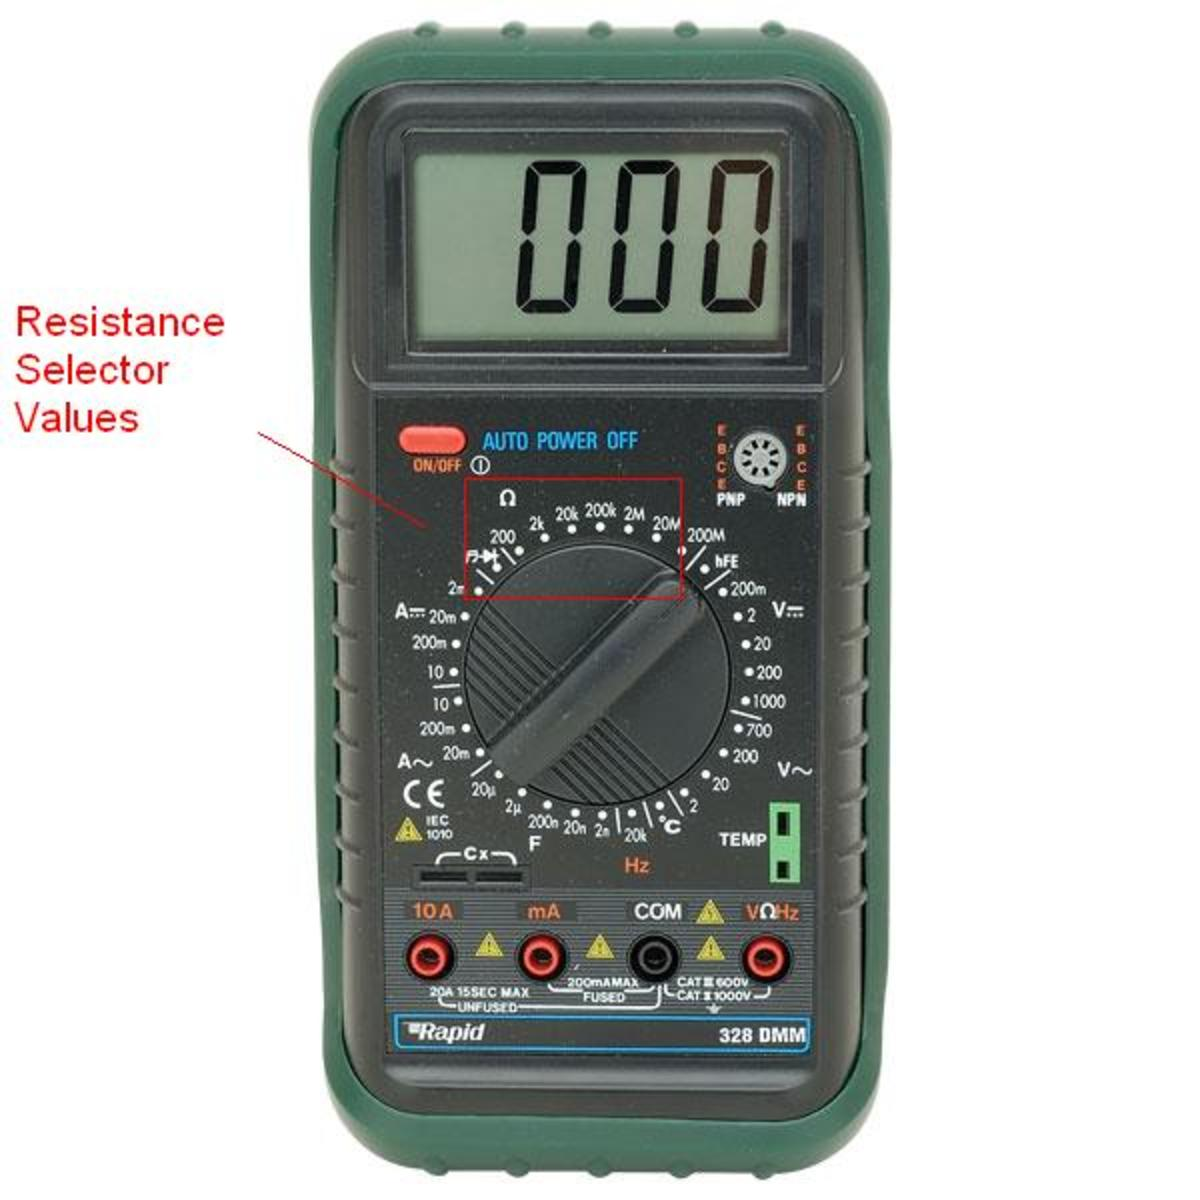 The rotating knob positions for measuring resistance. This particular multimeter unit also includes a frequency meter near the bottom of the selector, with an F sign.